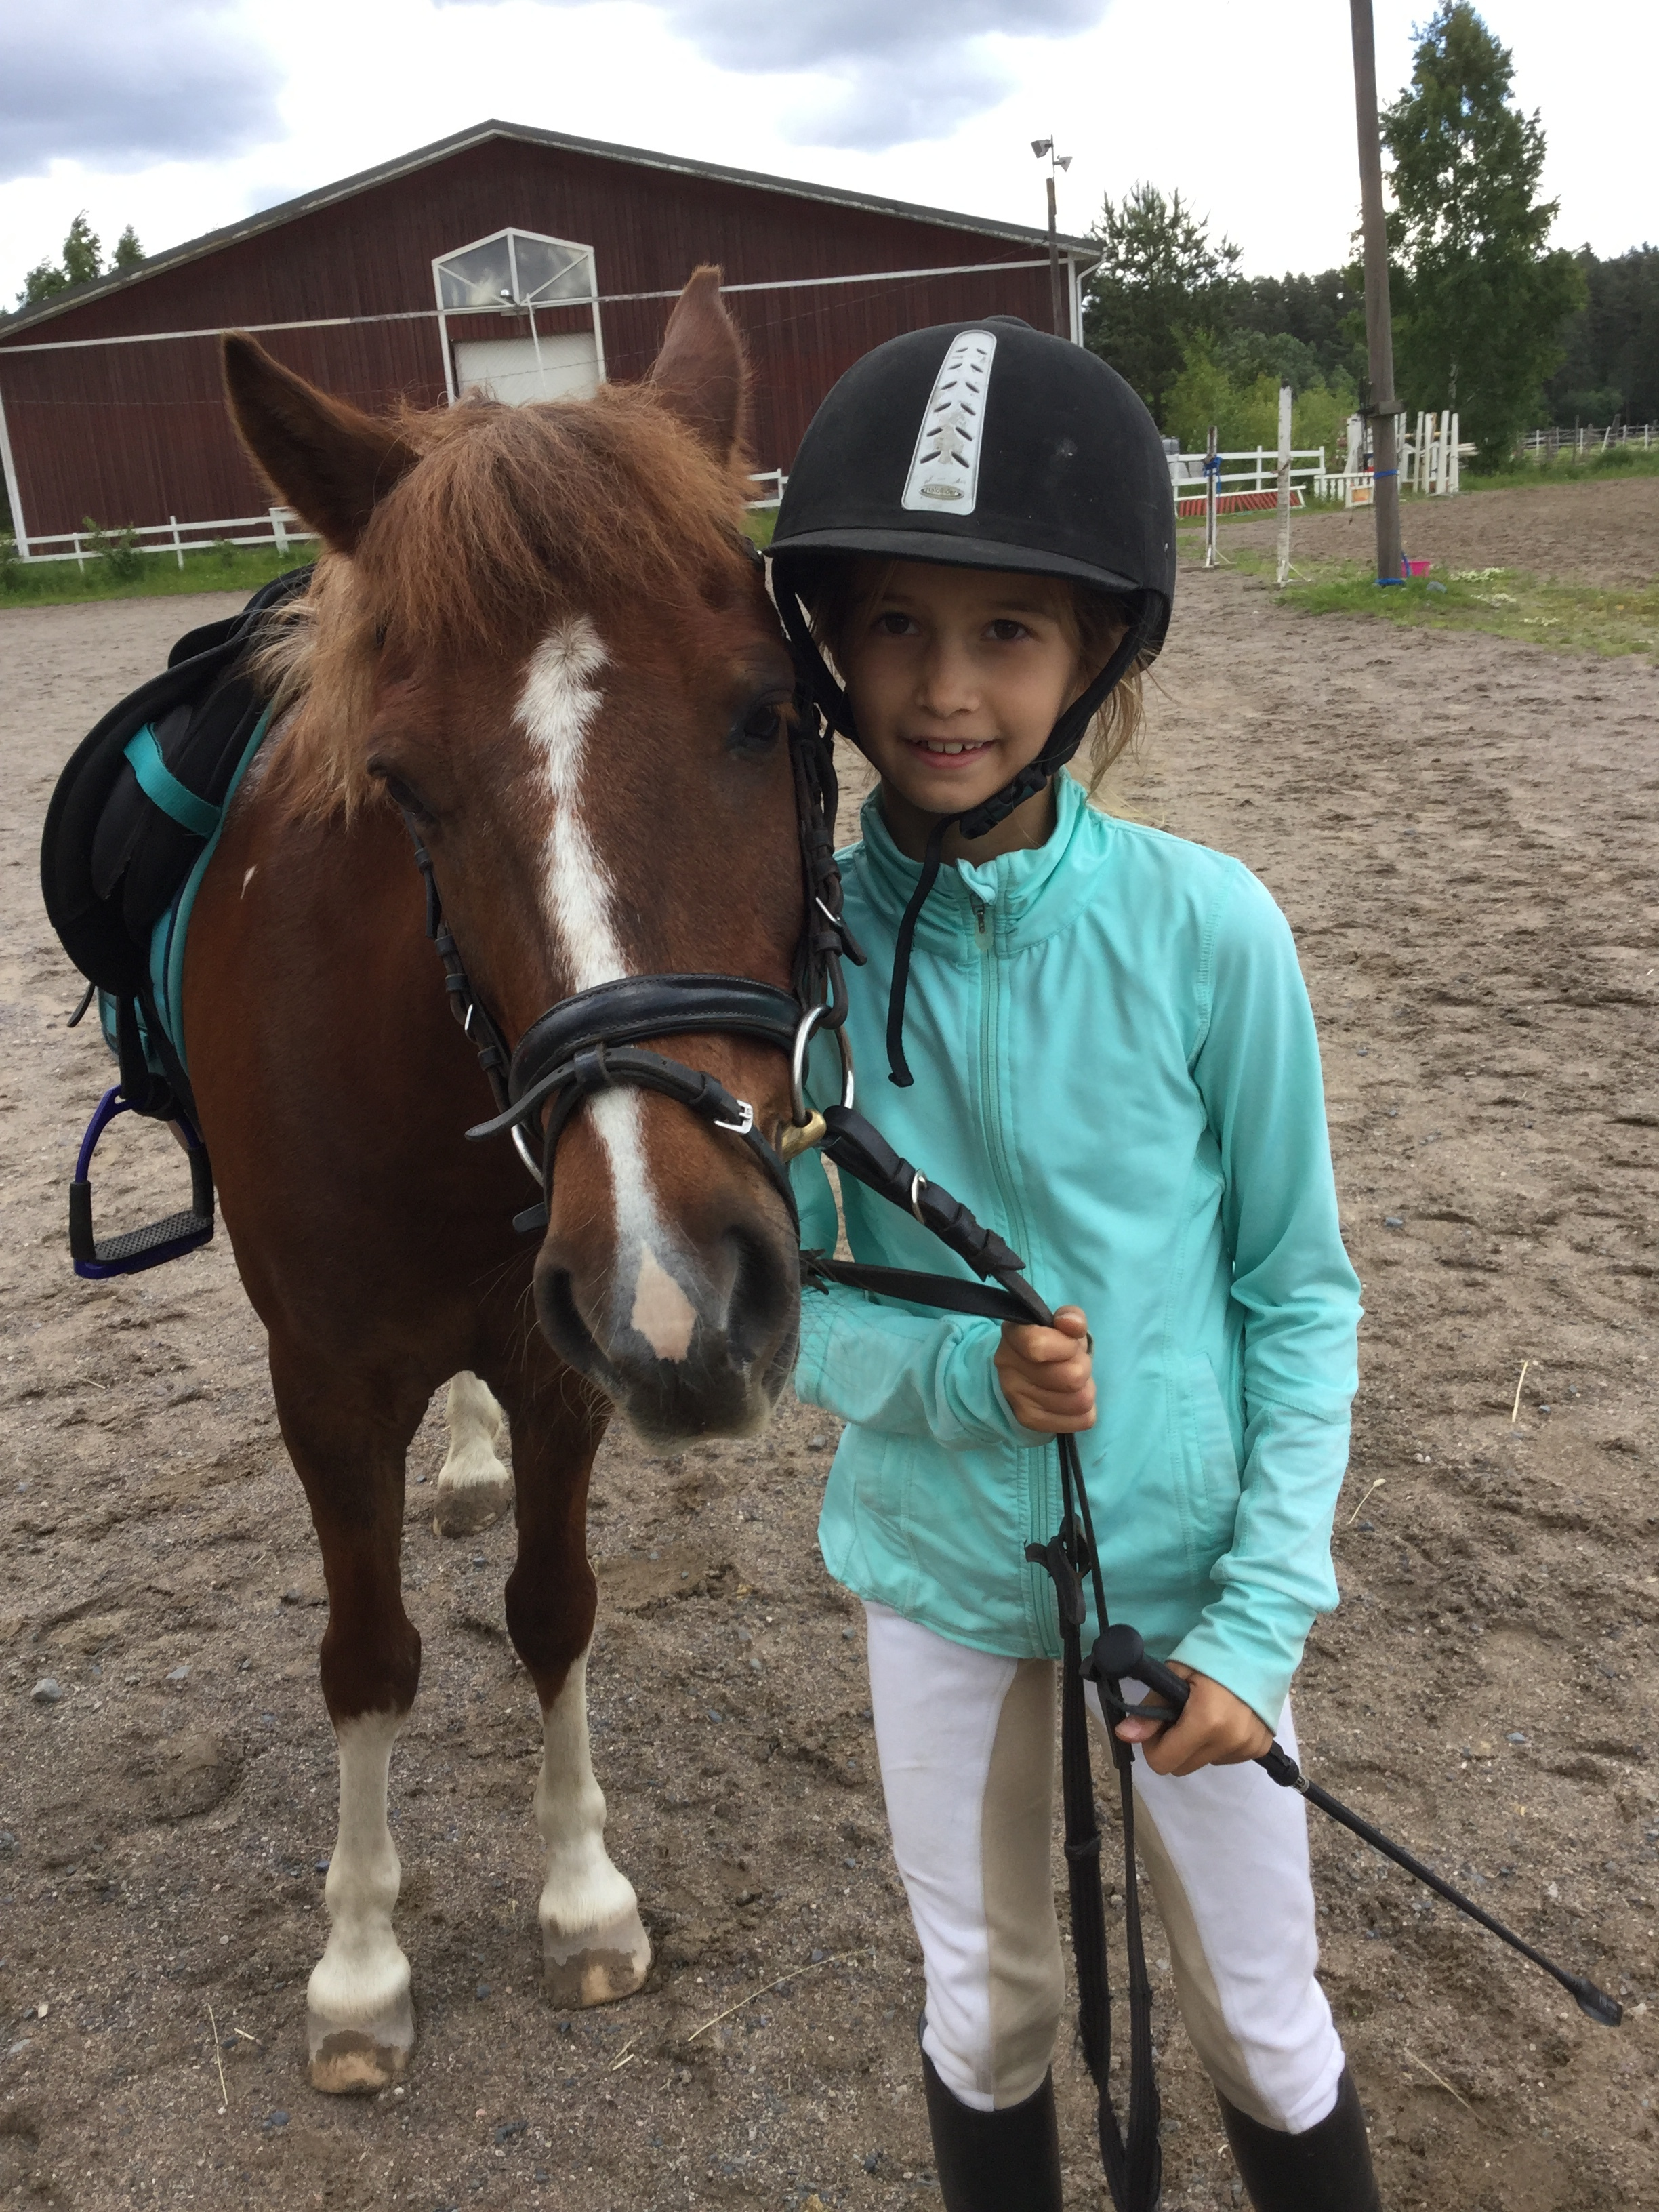 Lili and Miku. Miku was the first horse Lili jumped with in Finland. Miku is a strong character and also taught Lili something completely new: how it feels to fall off a horse! Emmi was coaching Lili at the indoor class.